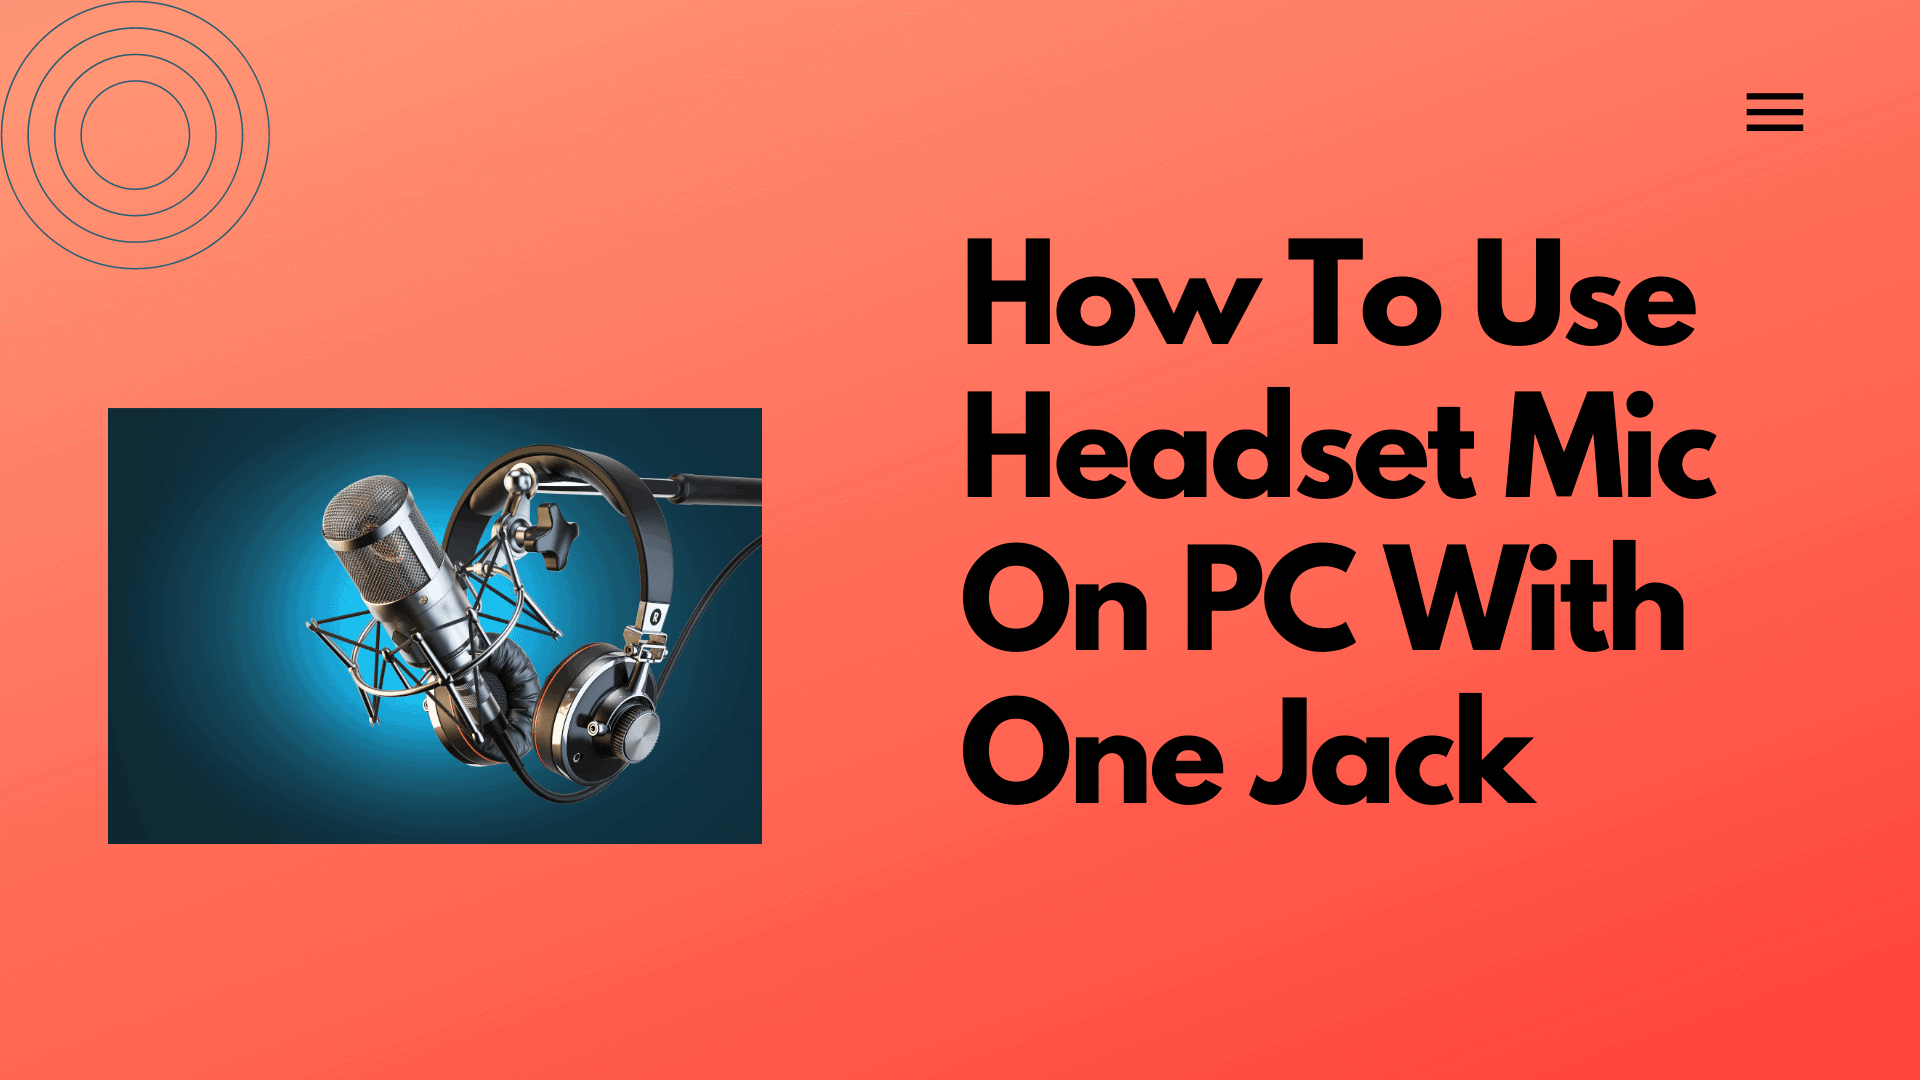 How To Use Headset Mic On PC With One Jack